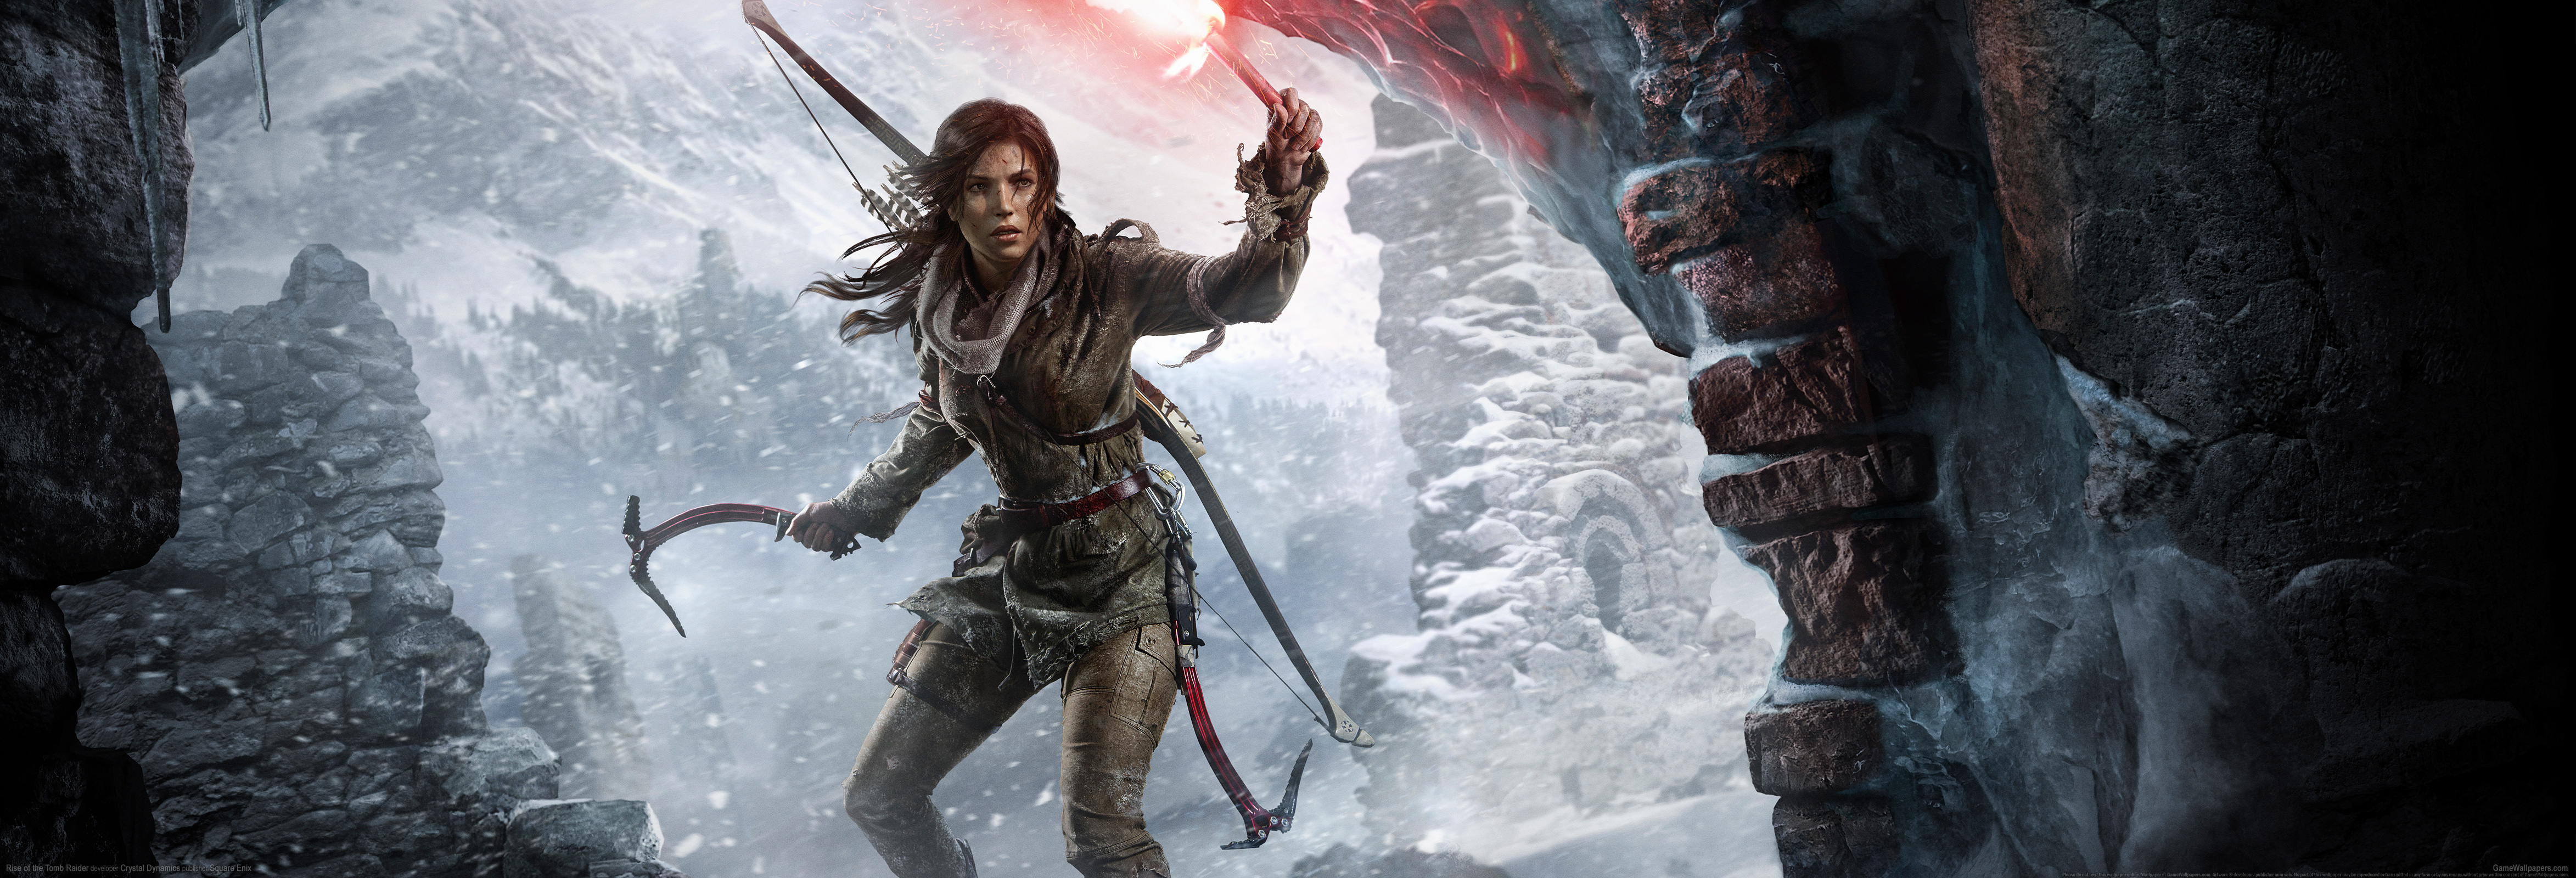 Rise of the Tomb Raider wallpaper 11 4693x1600